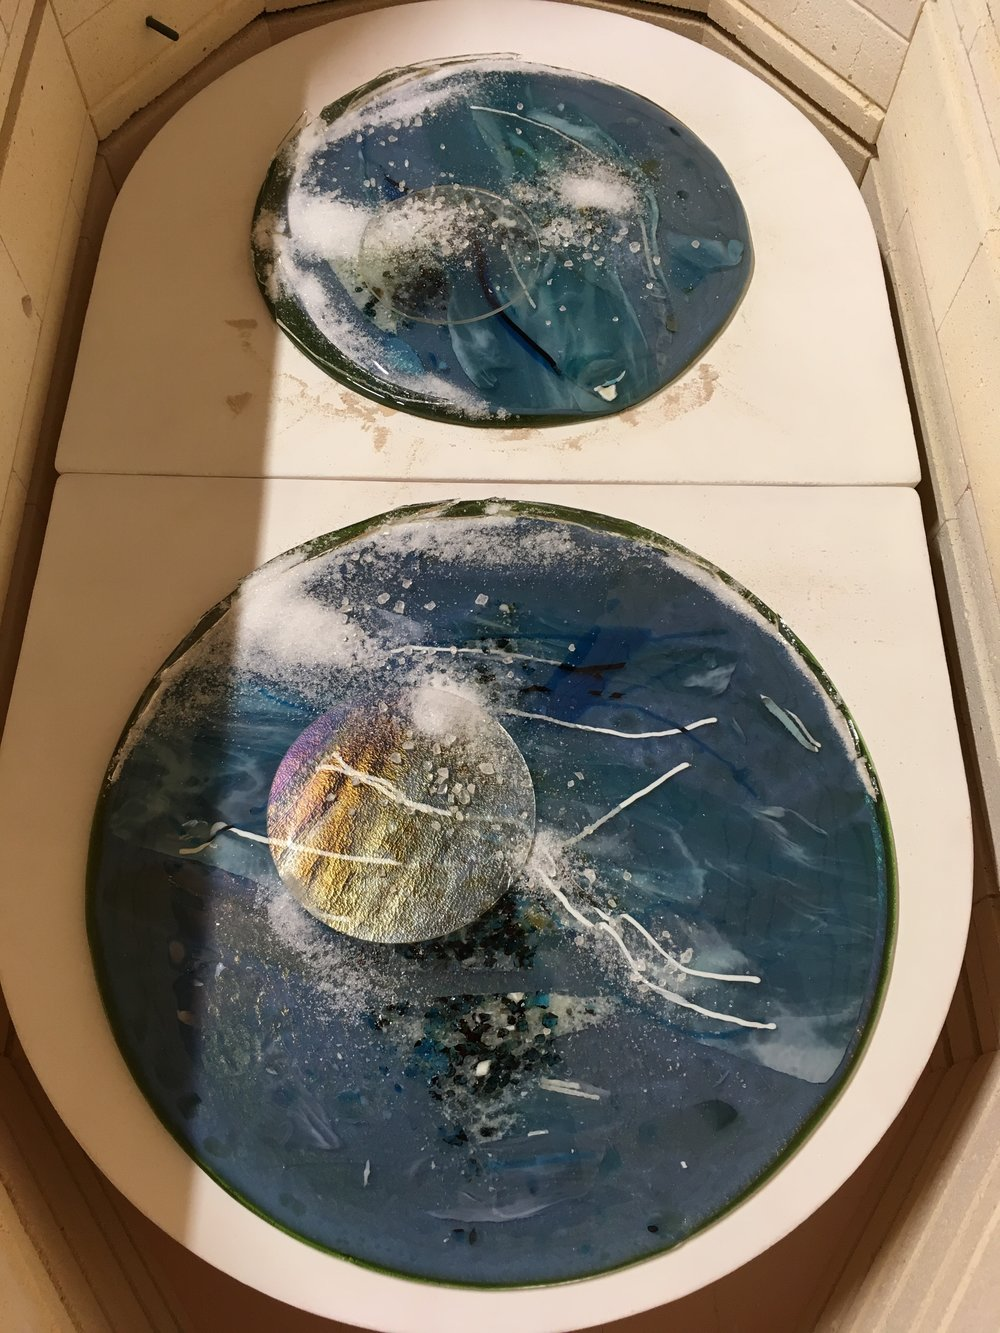 These are bird's eye view of two newer water rounds — in the kiln. (Work will debut at  McColl Center for Art + Innovation  exhibition during my residency that starts next month:)